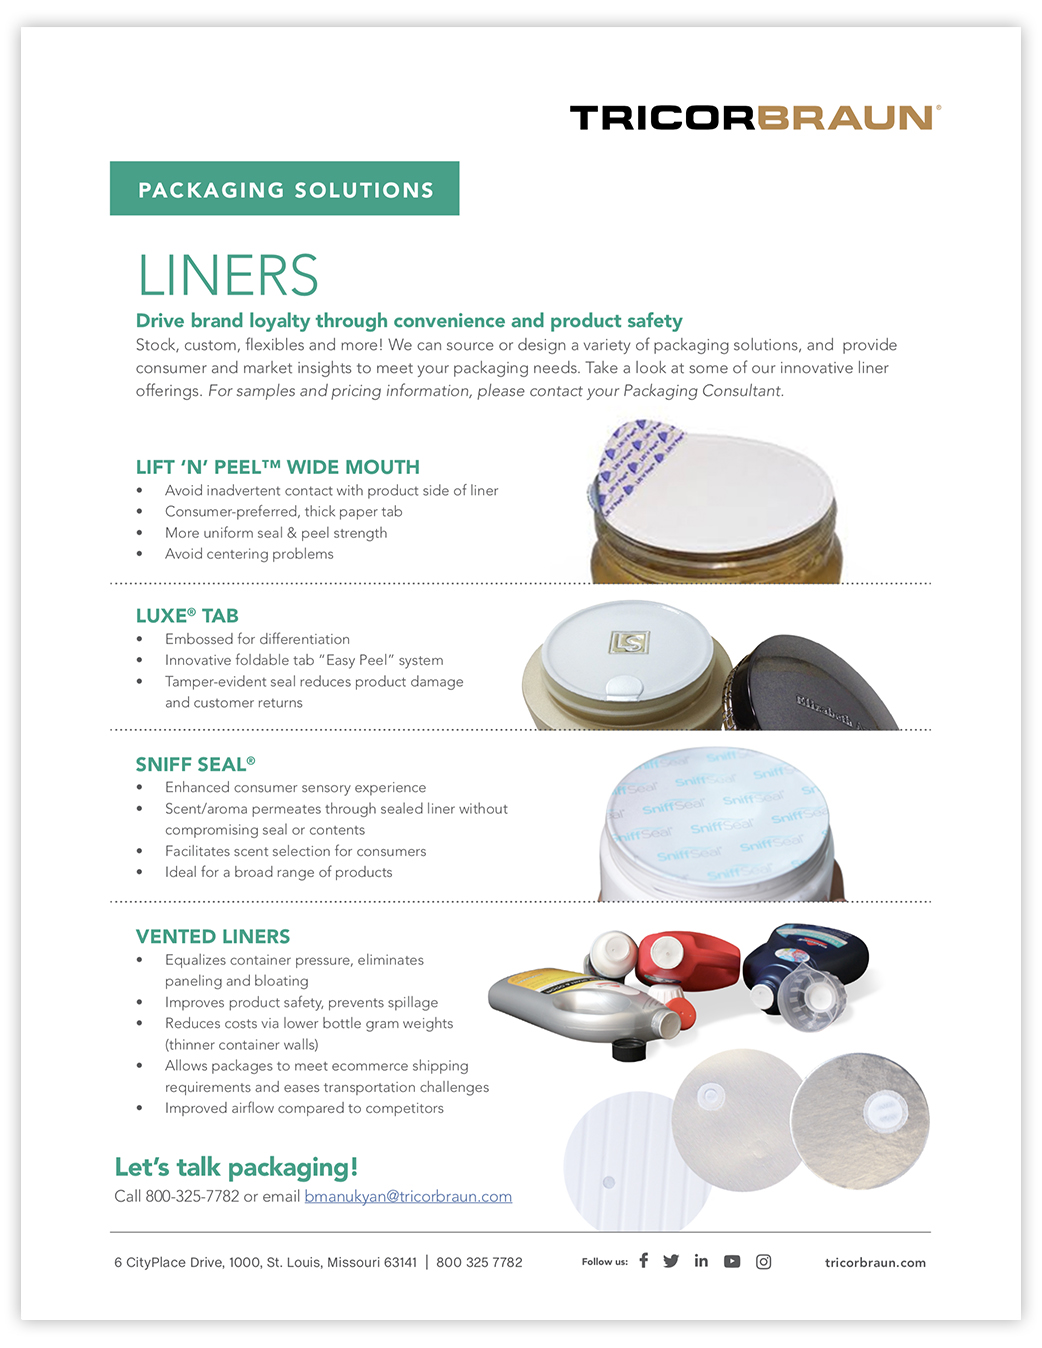 TricorBraun Packaging Solutions: Liners